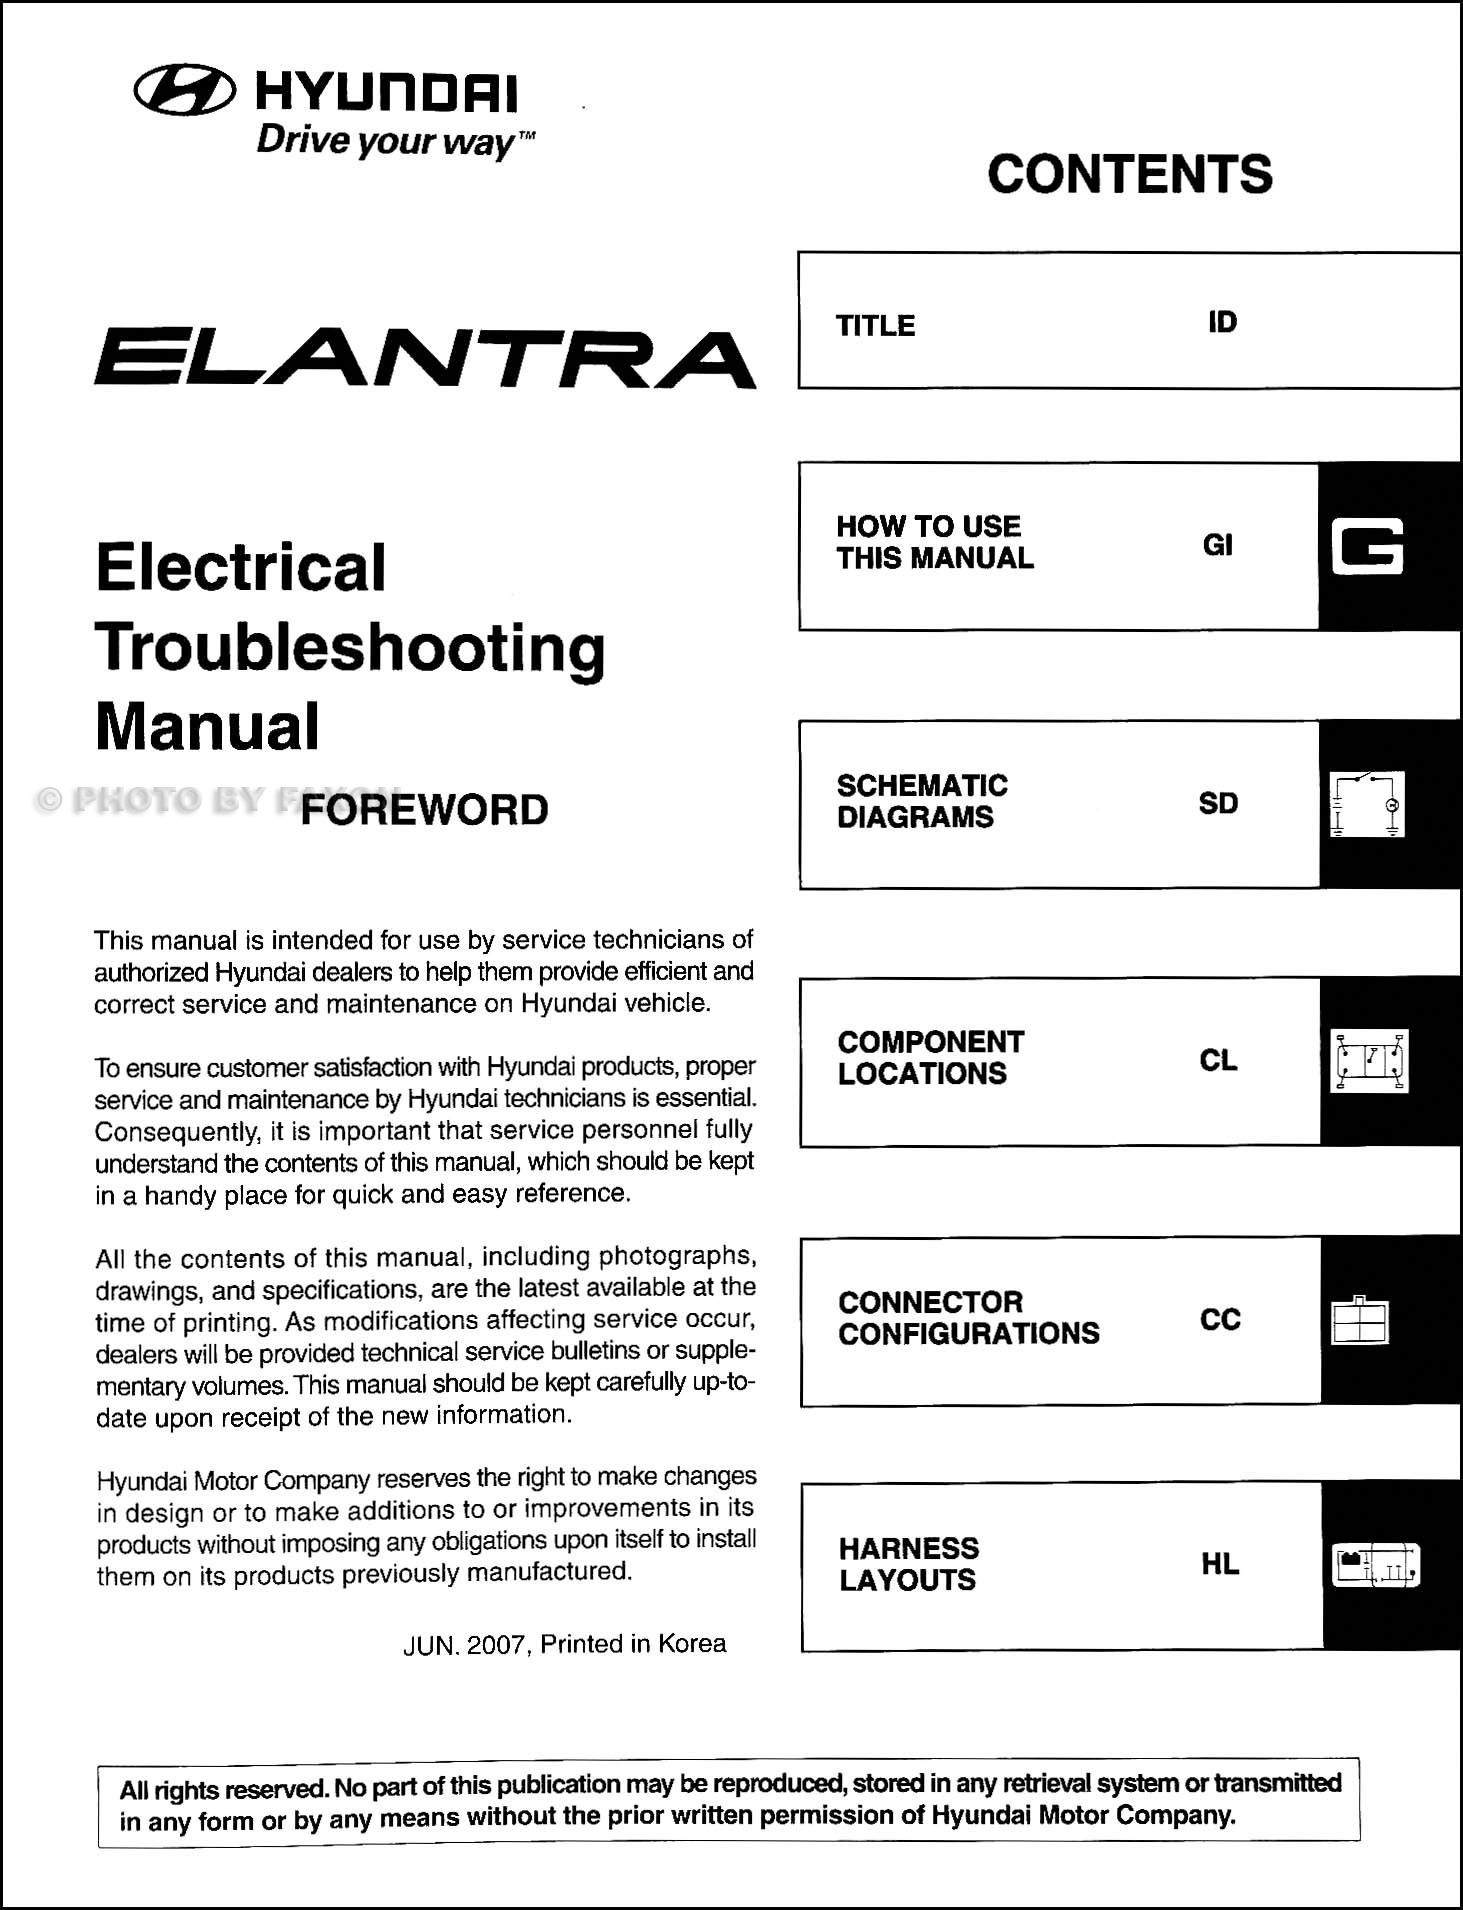 2008 Hyundai Elantra Electrical Troubleshooting Manual ...